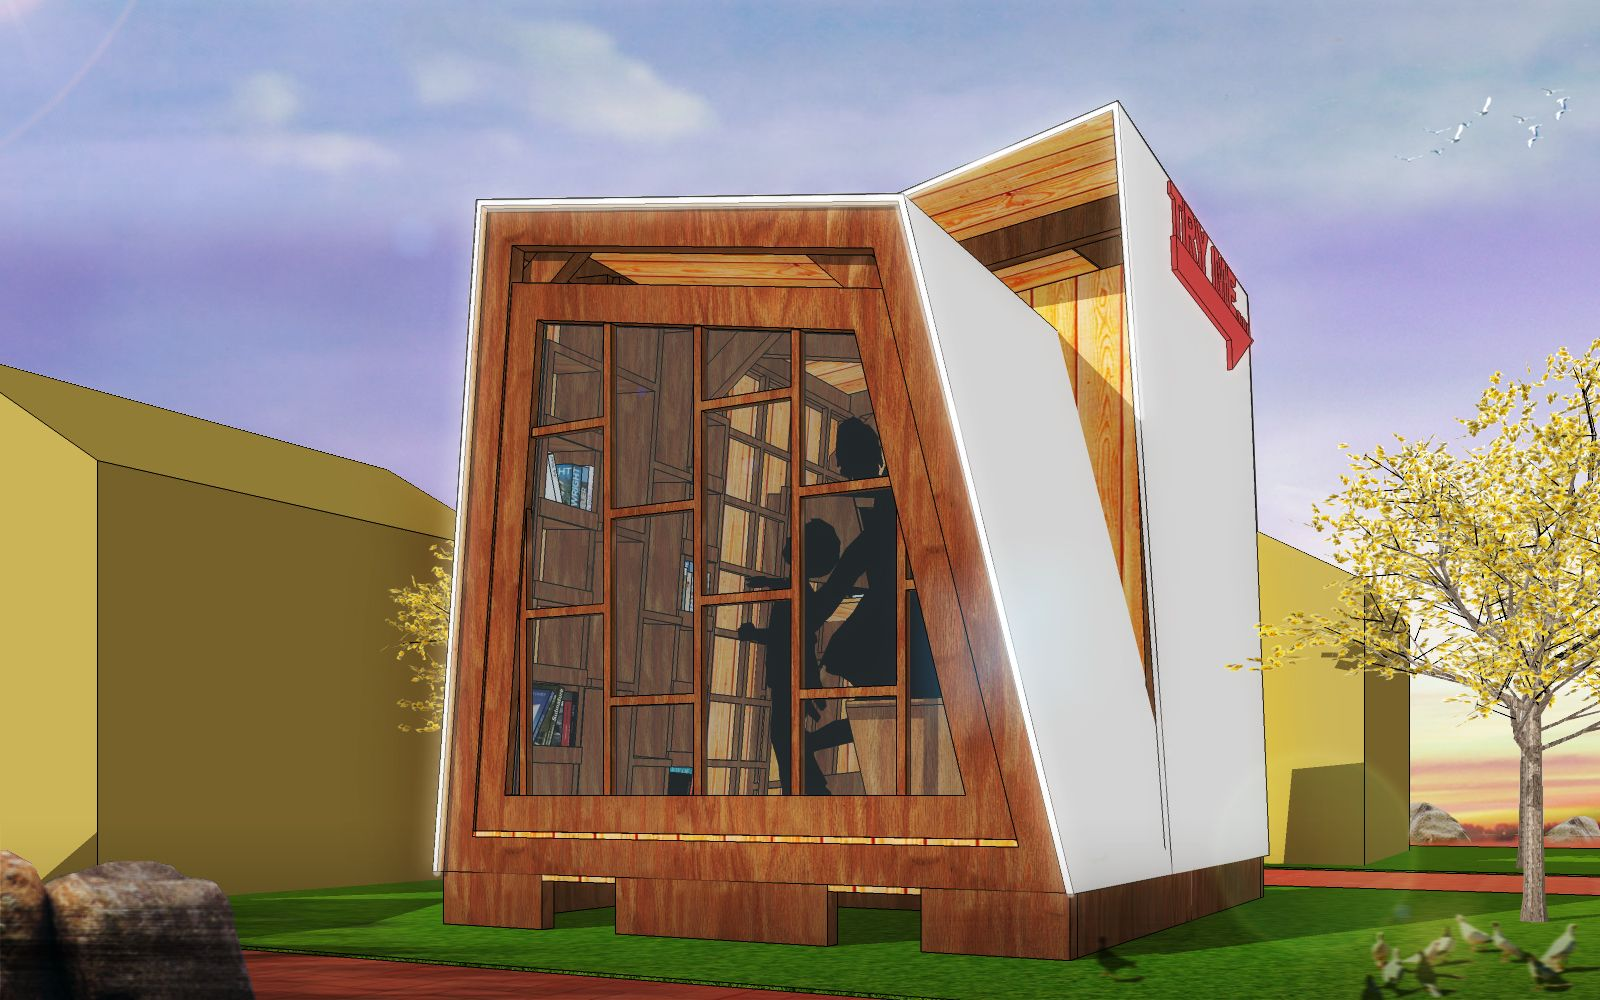 #architecture #playhouse Check our Portfolio : http://indoarsia.wix.com/architecture